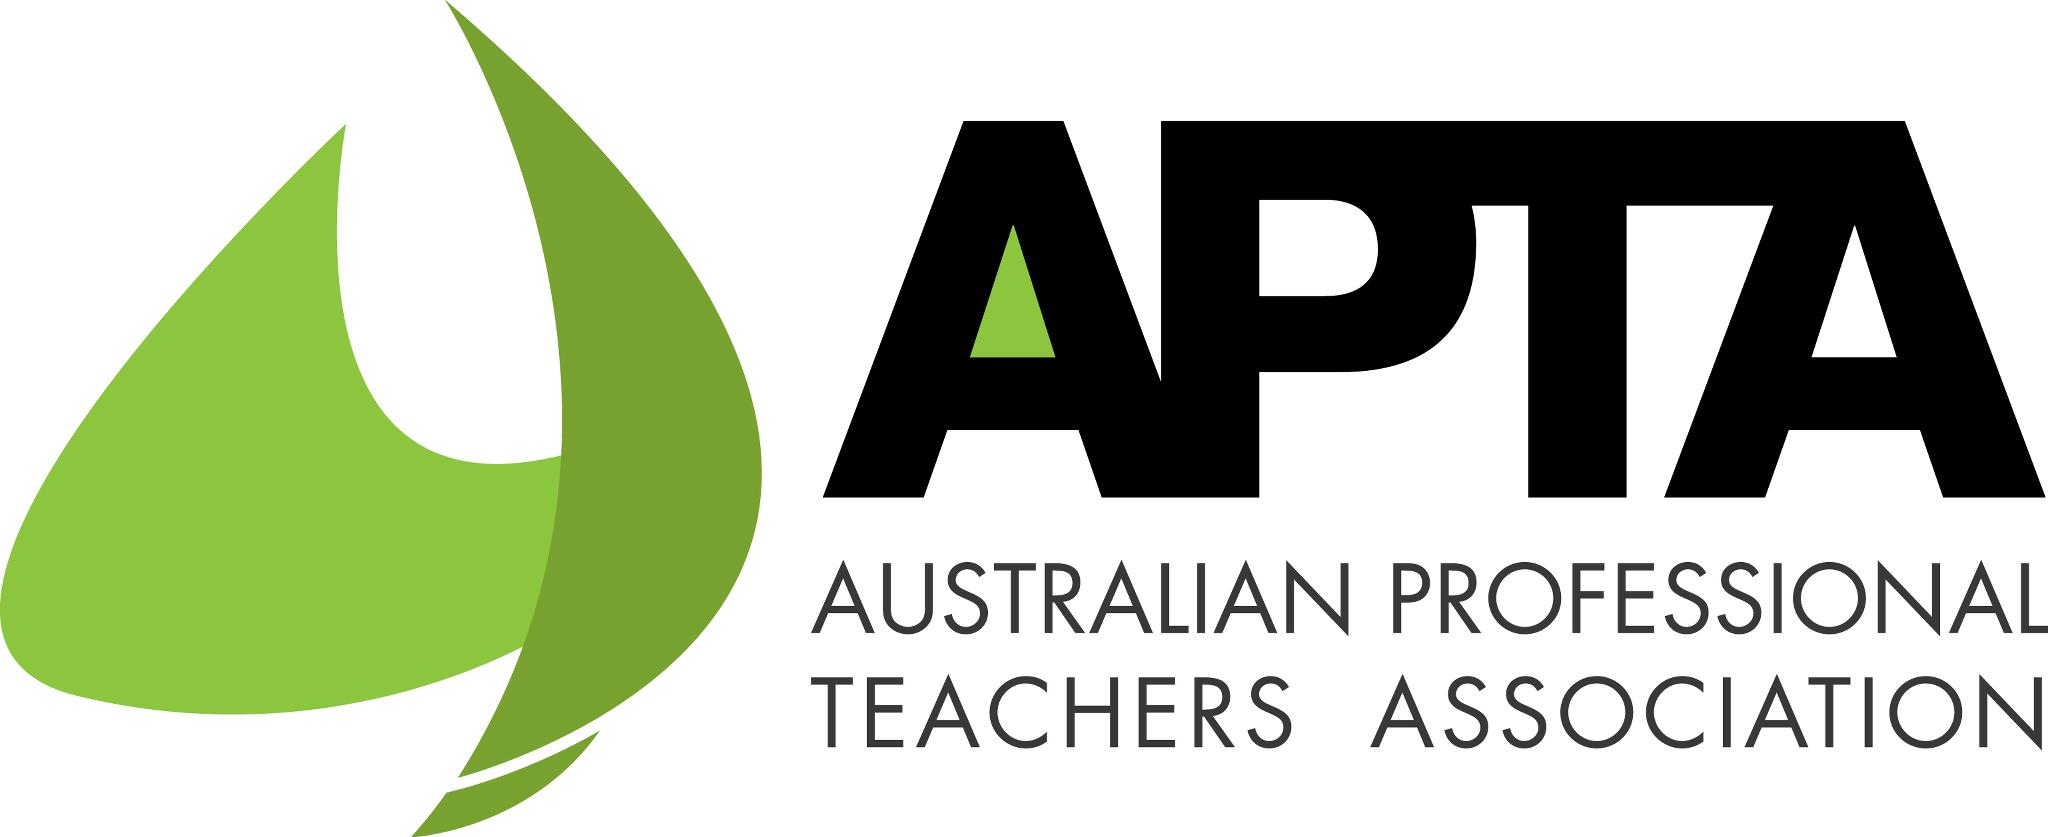 Australian Professional Teachers Association